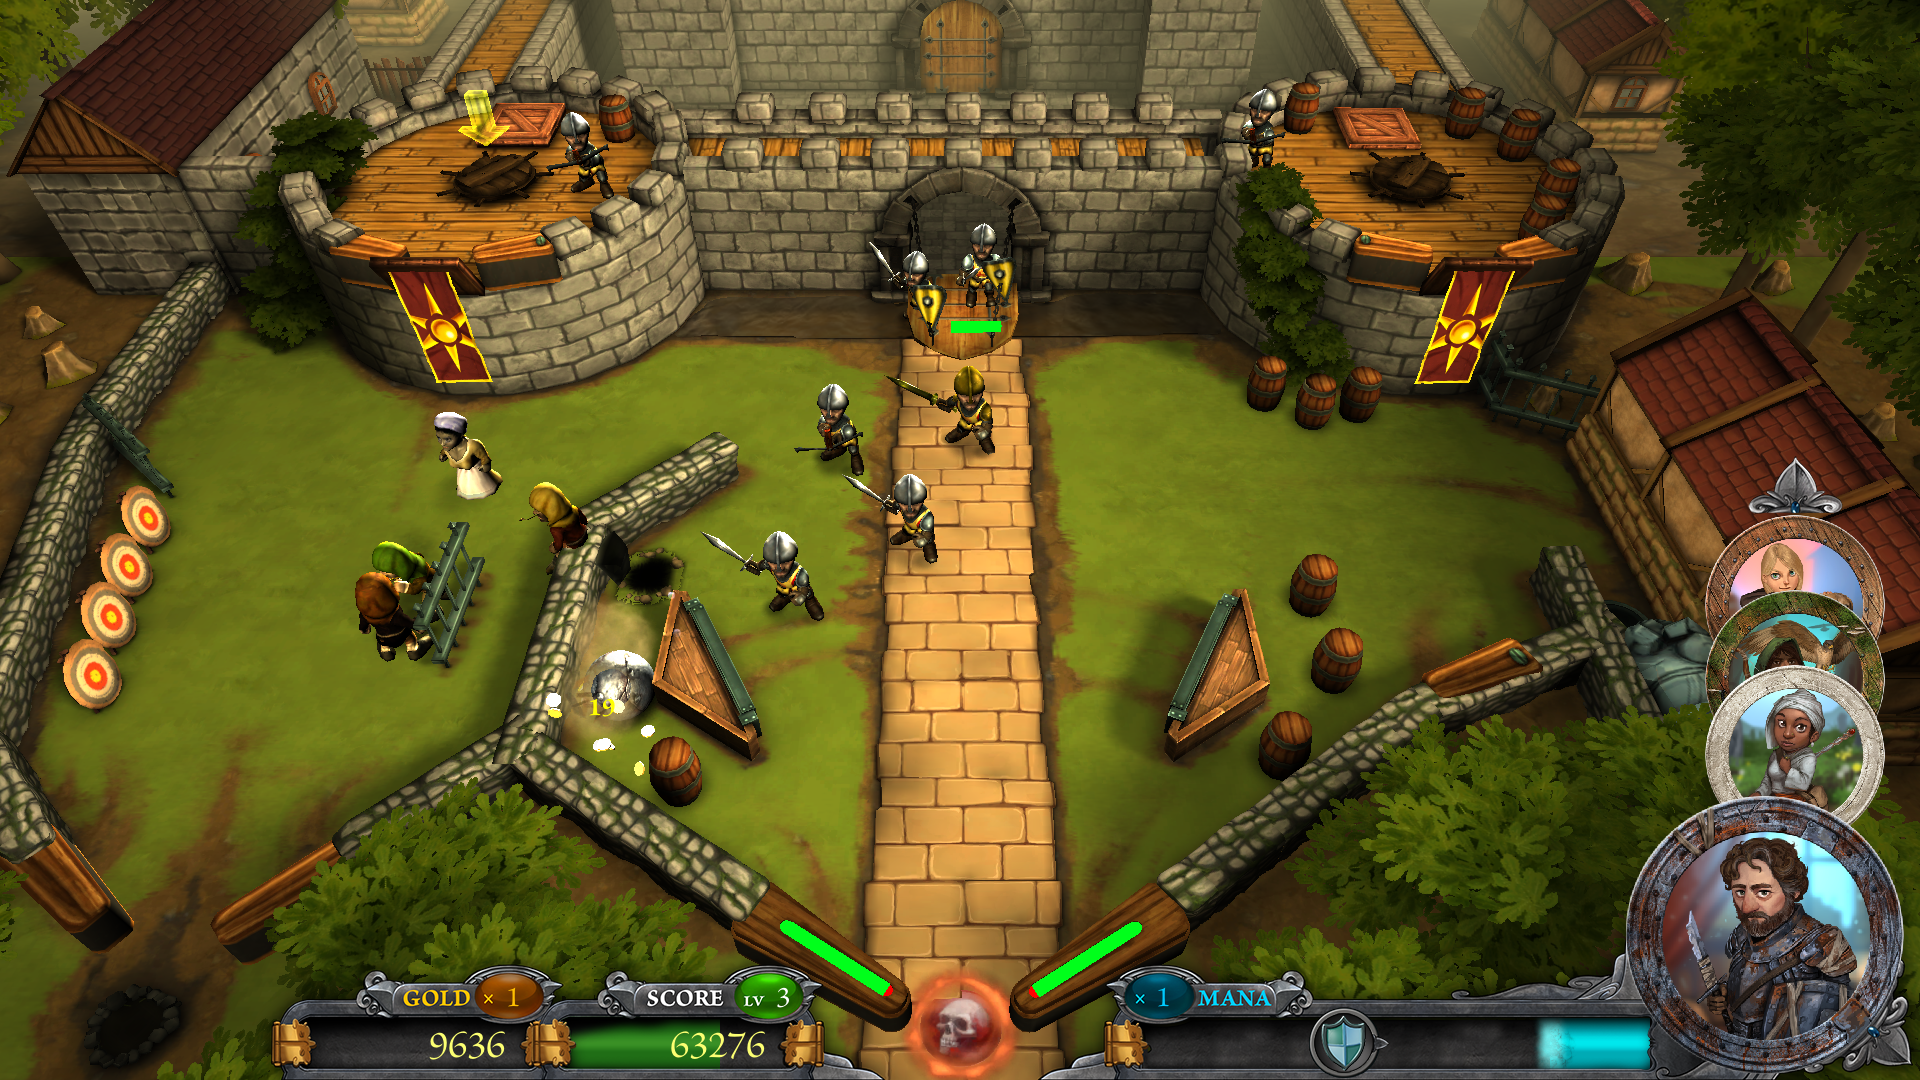 rollers-of-the-realm-castle-gates-01.png